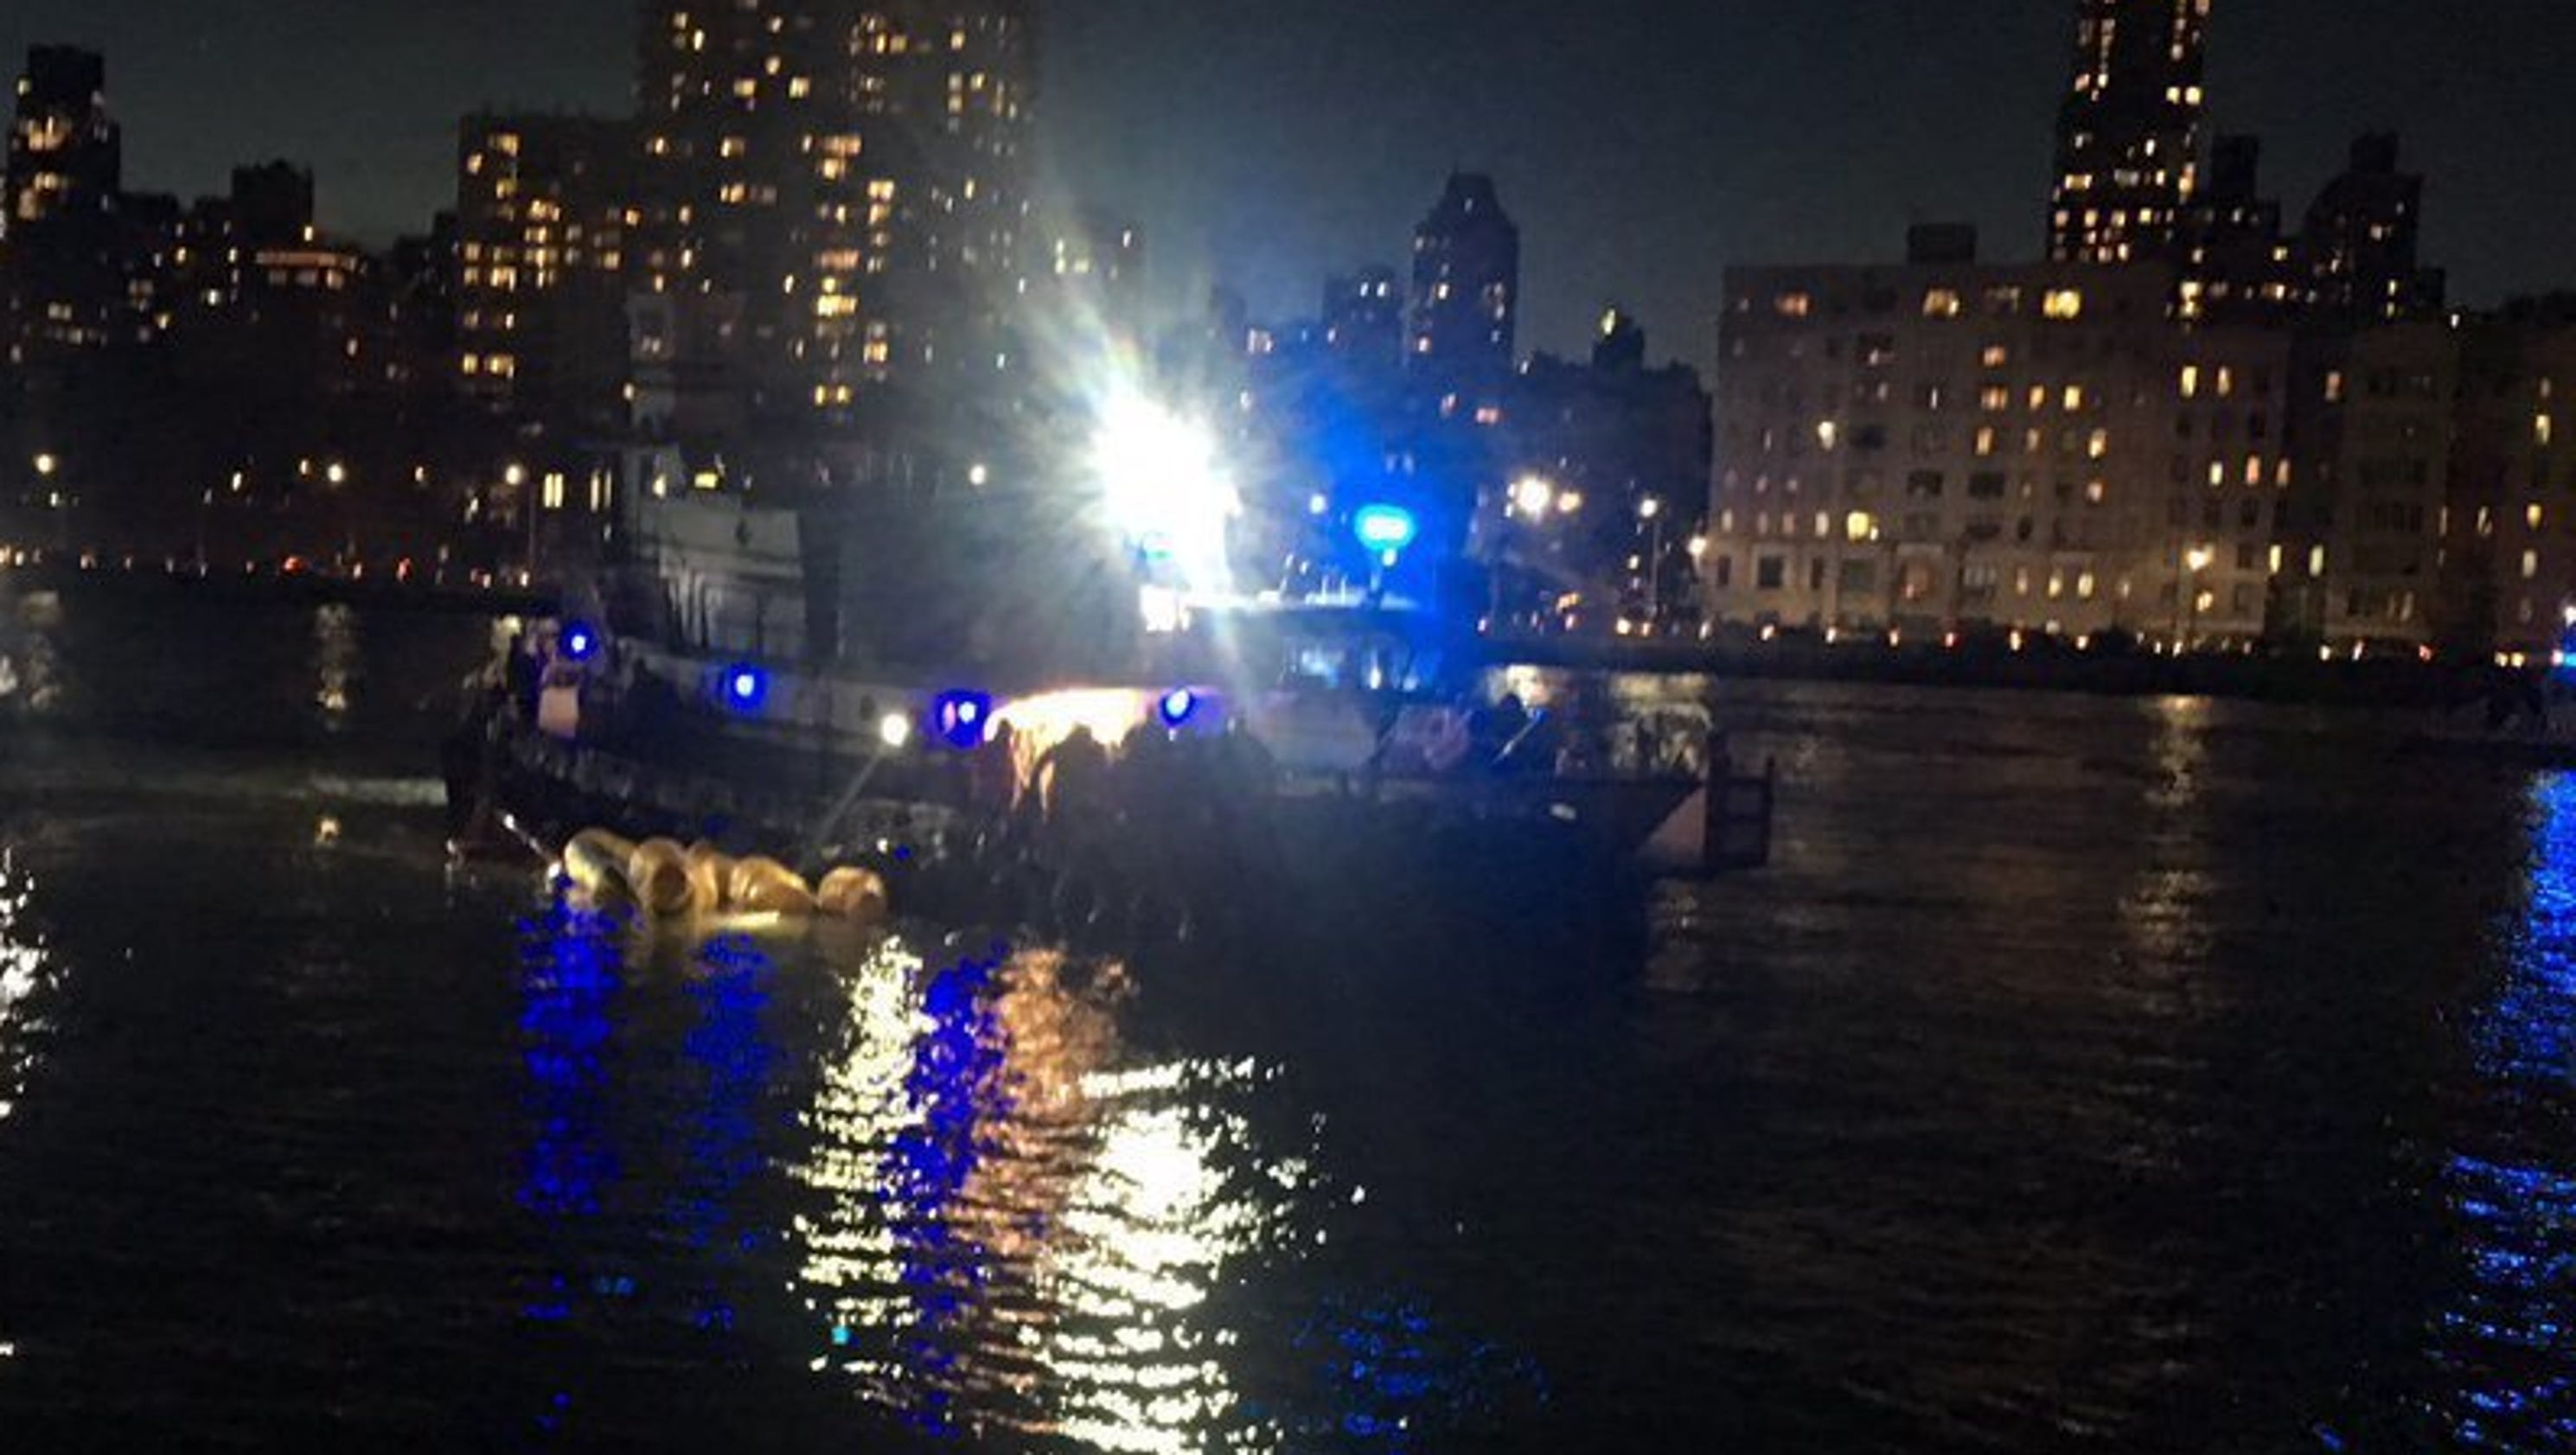 NYC helicopter crash may have been caused by passenger bag hitting fuel shutoff button, reports say